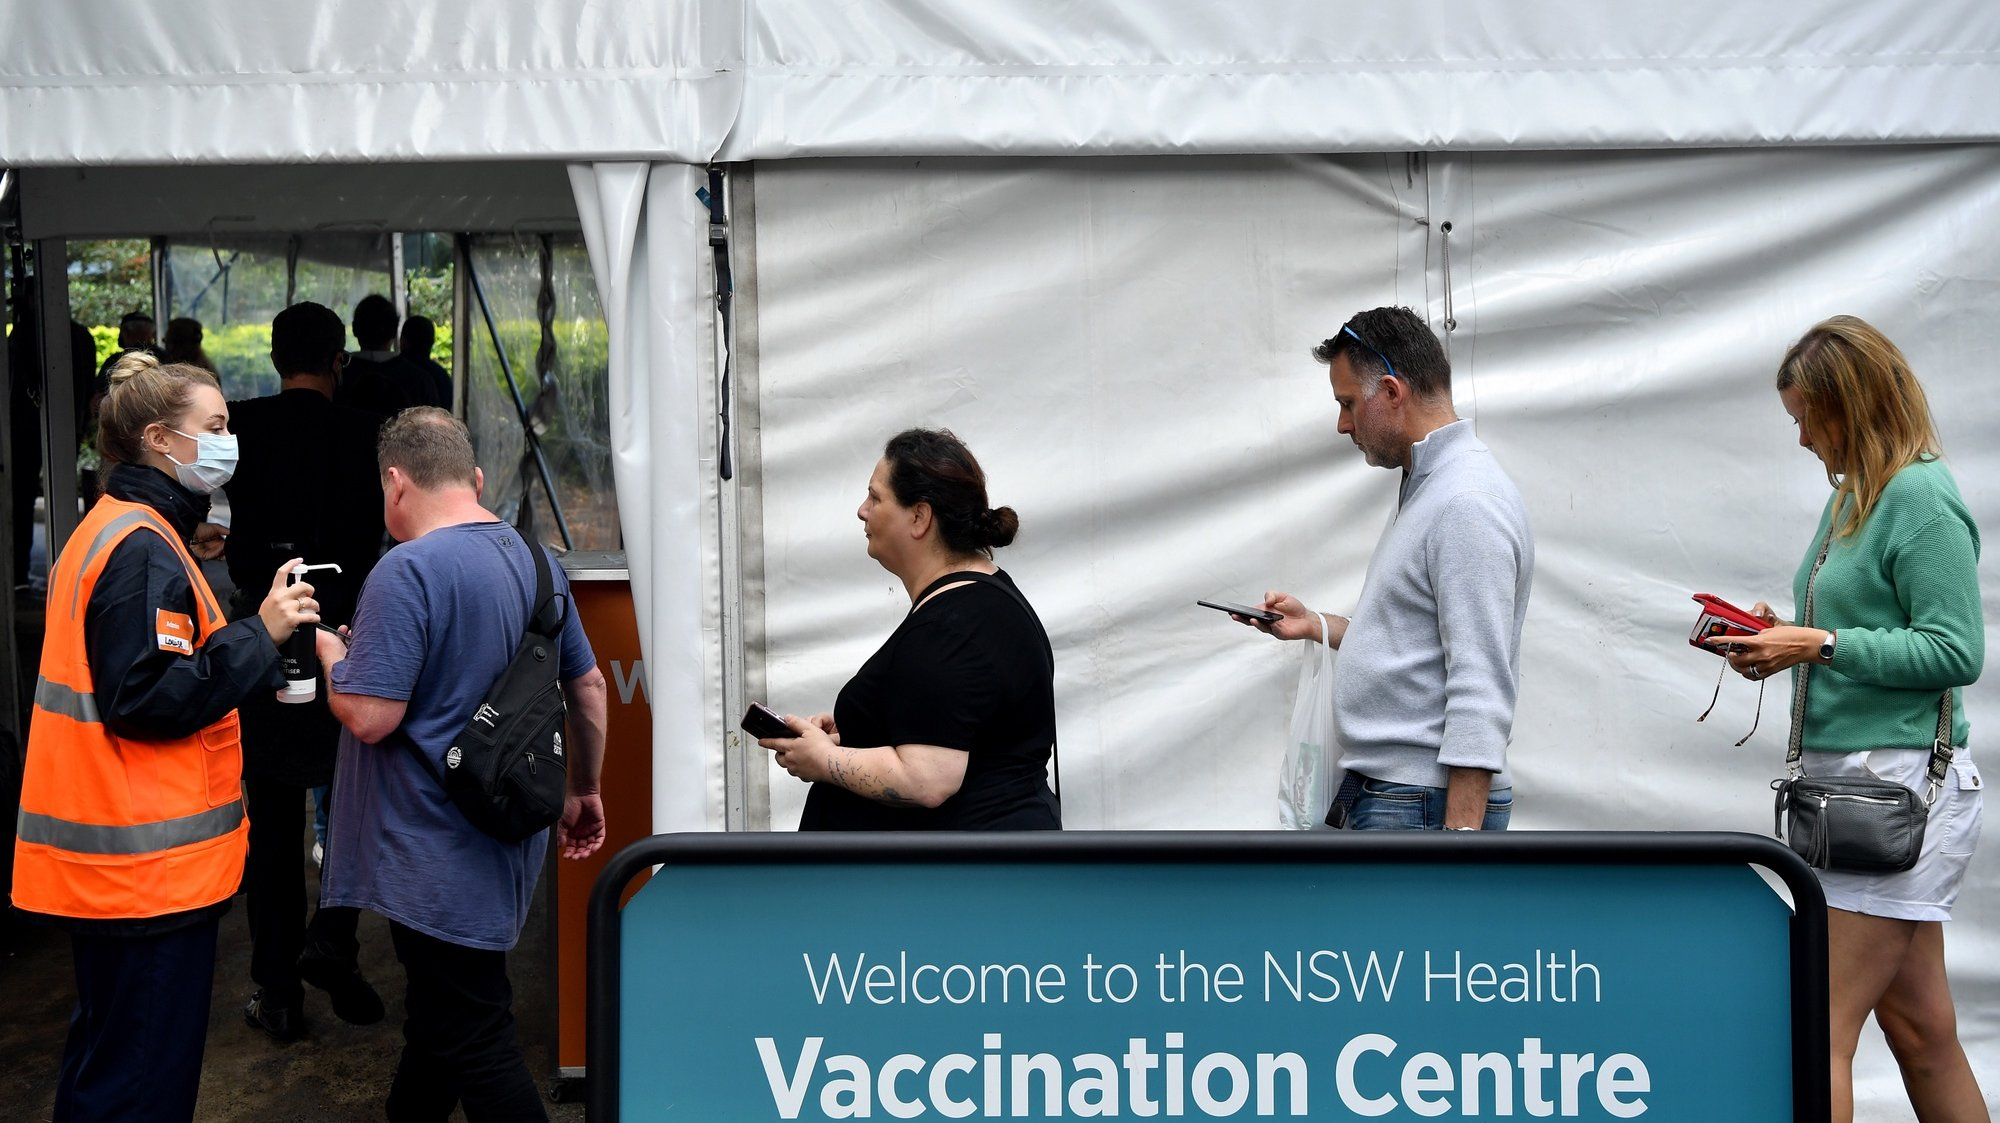 epa09224615 People queue to receive a shot of COVID-19 vaccine during a mass vaccination drive in Sydney, Australia, 24 May 2021.  EPA/JOEL CARRETT AUSTRALIA AND NEW ZEALAND OUT